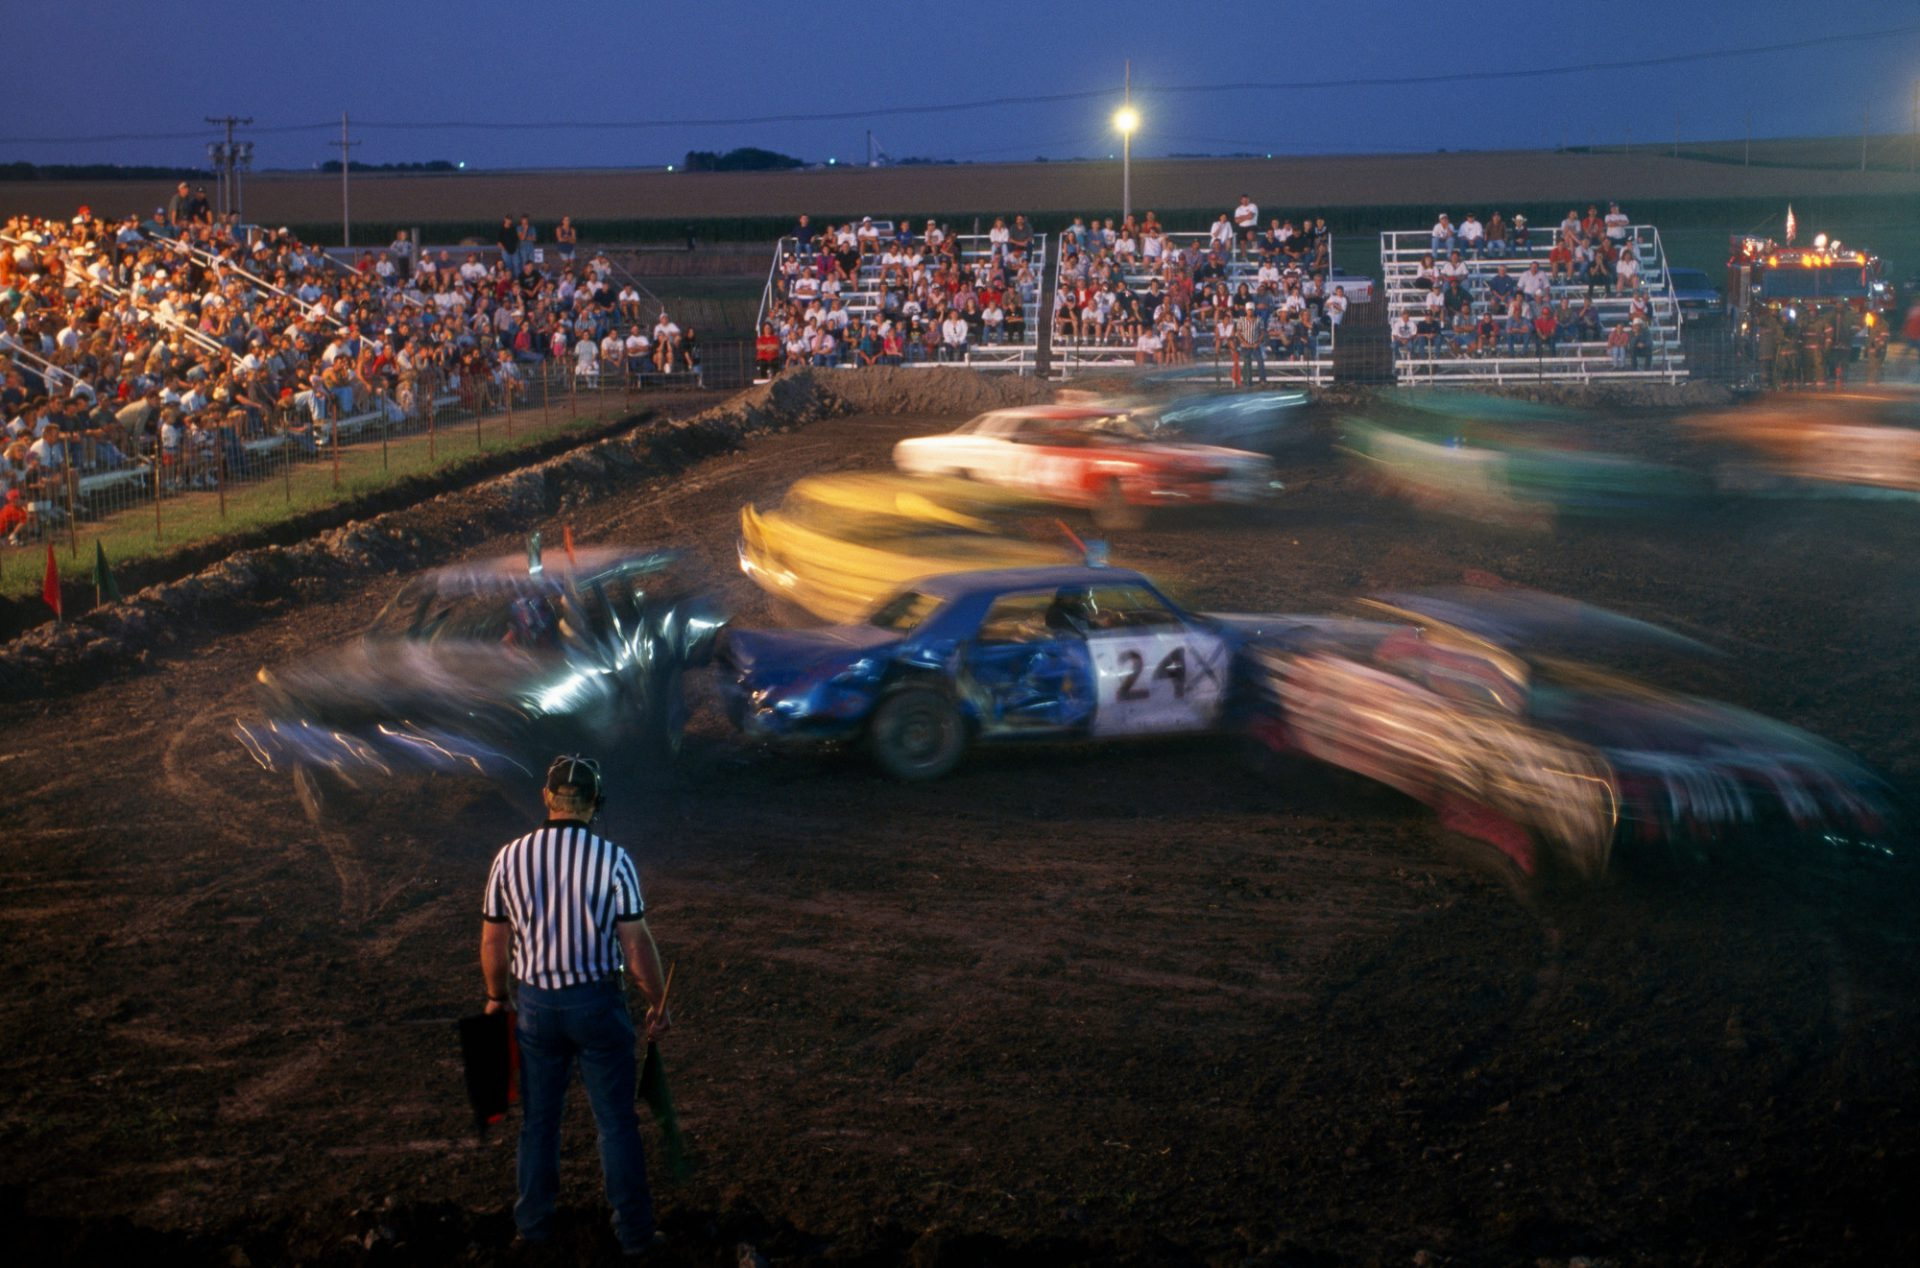 Photo: Local people watch a demolition derby at the Phelps County Fair.